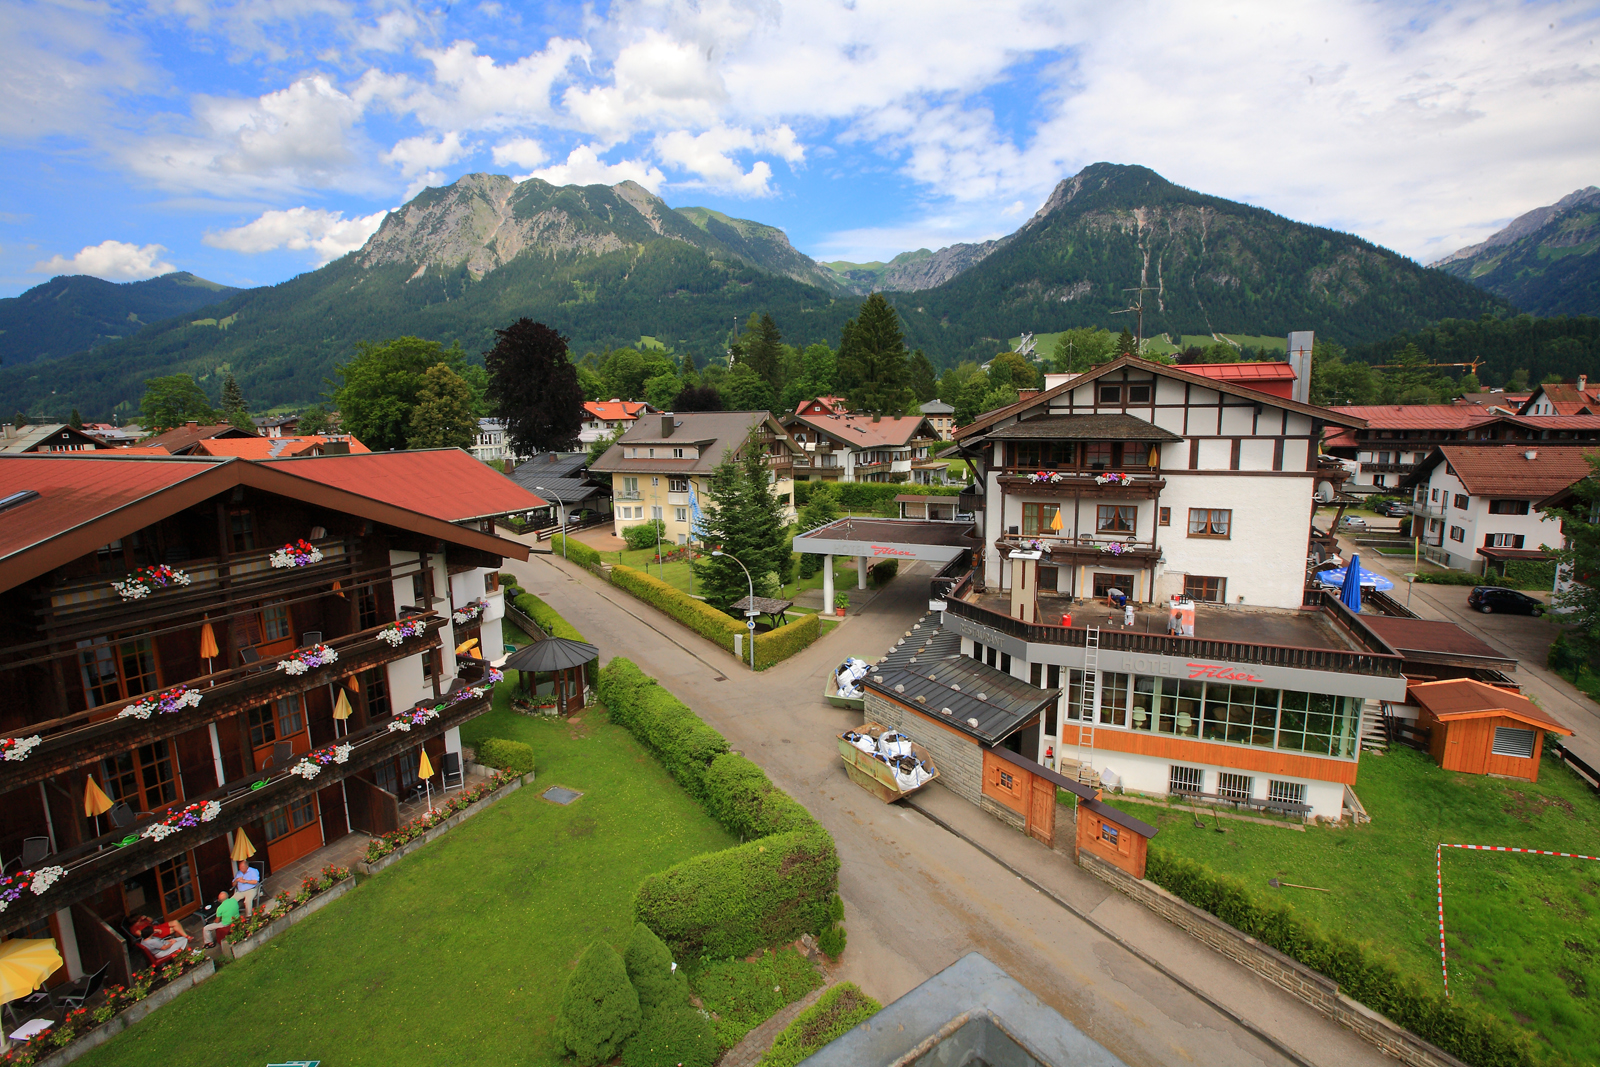 Parken am Hotel in Oberstdorf